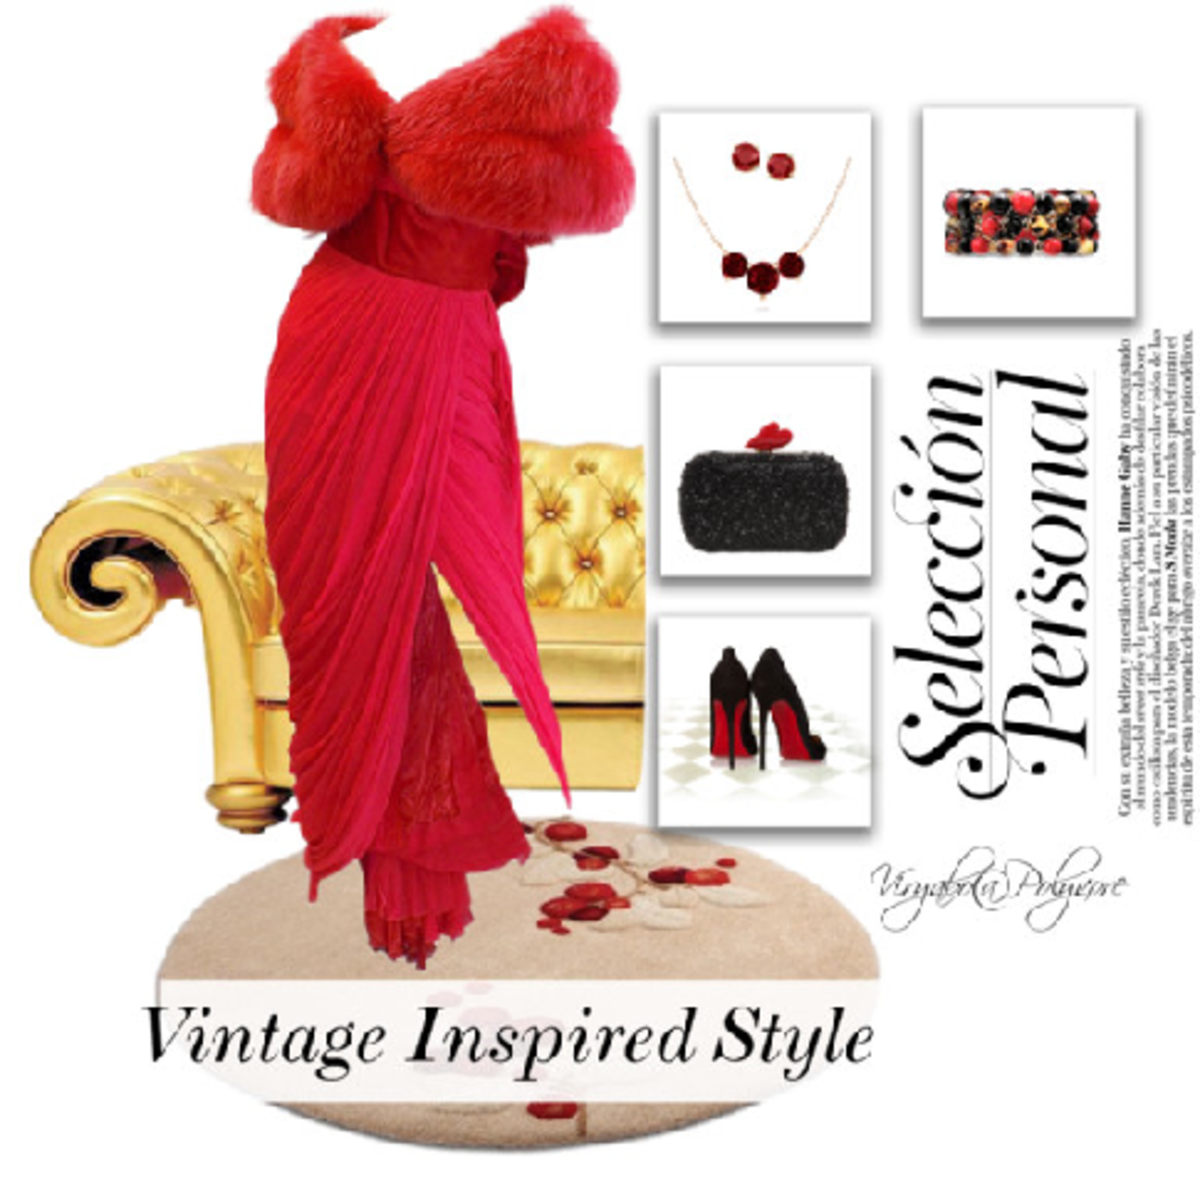 Vintage Dressing Style, a Modern Fashion Signature